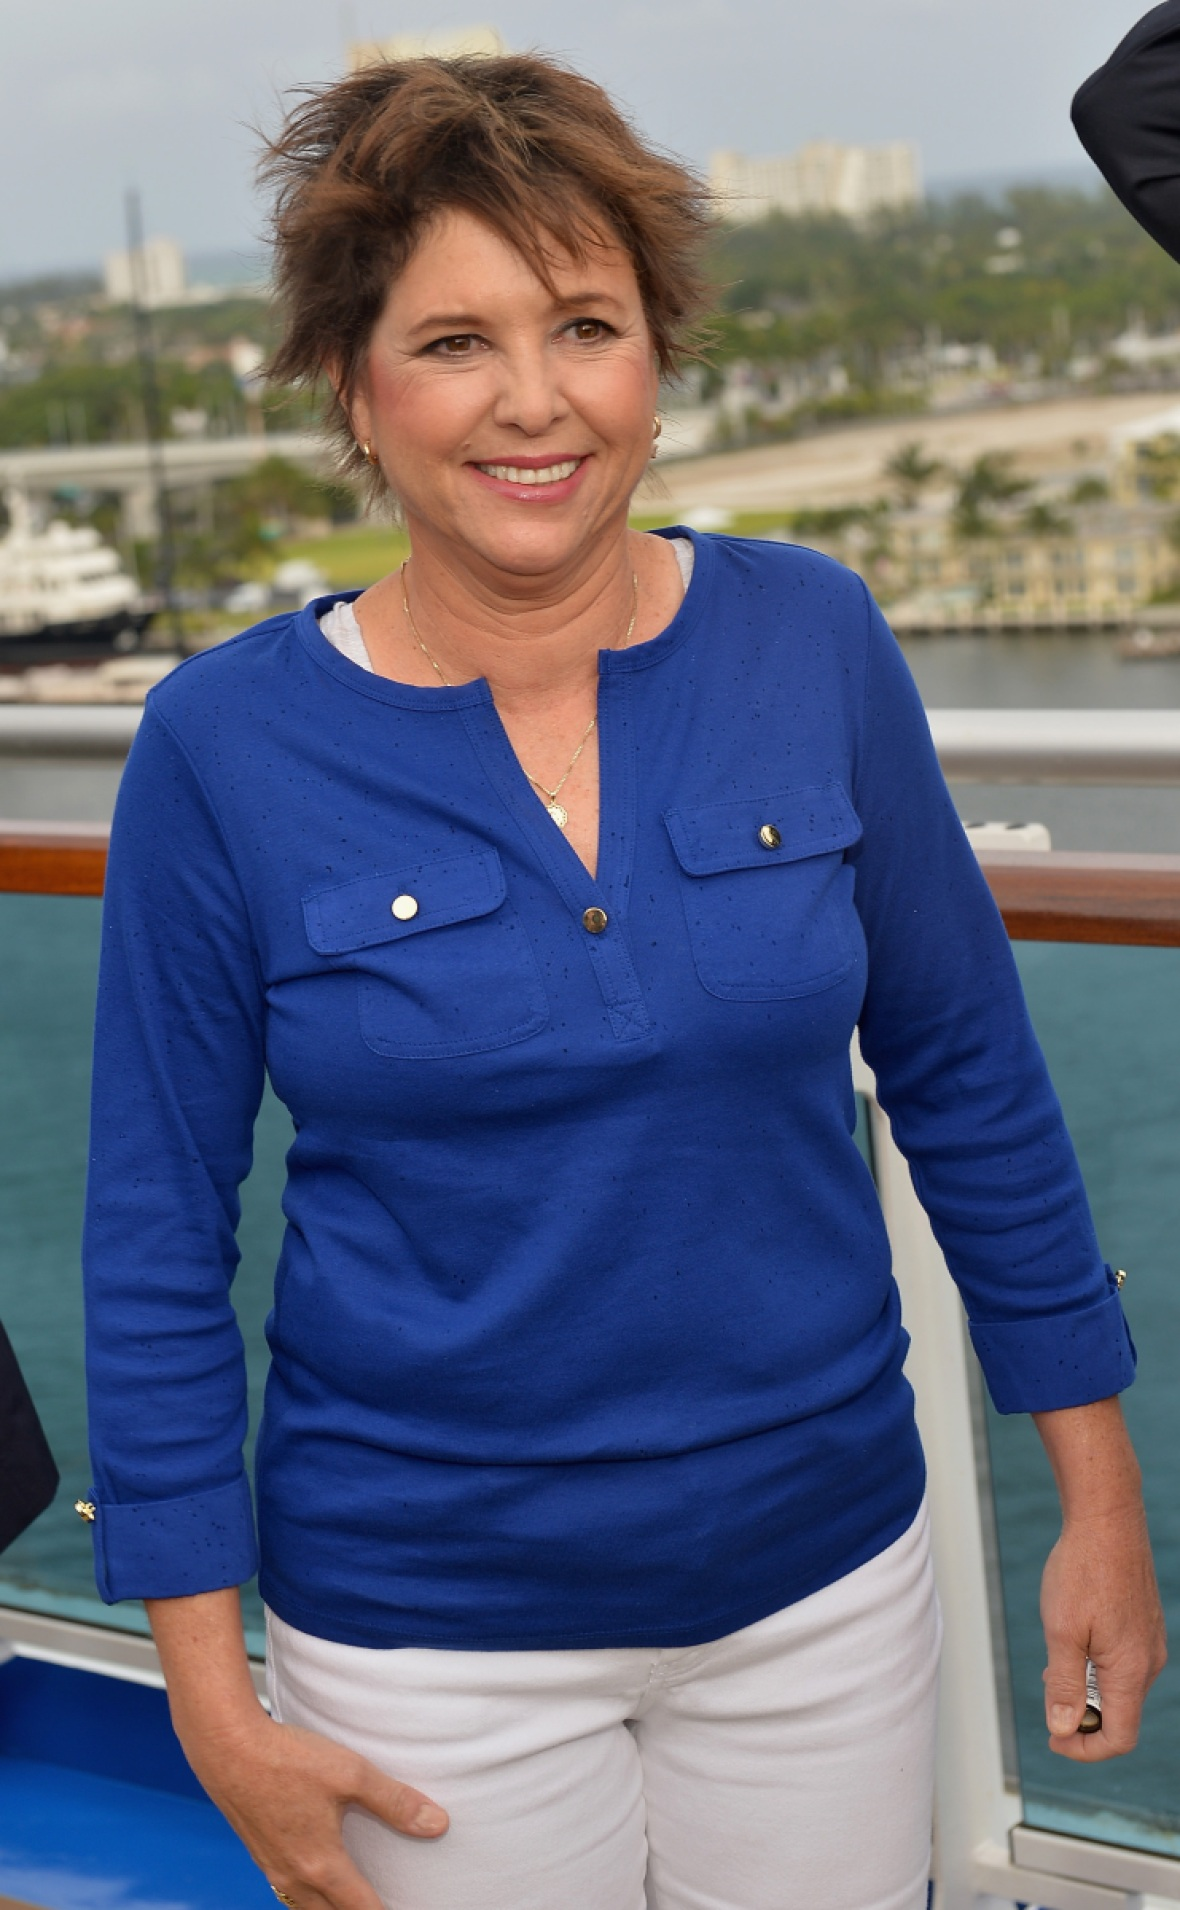 kristy mcnichol getty images